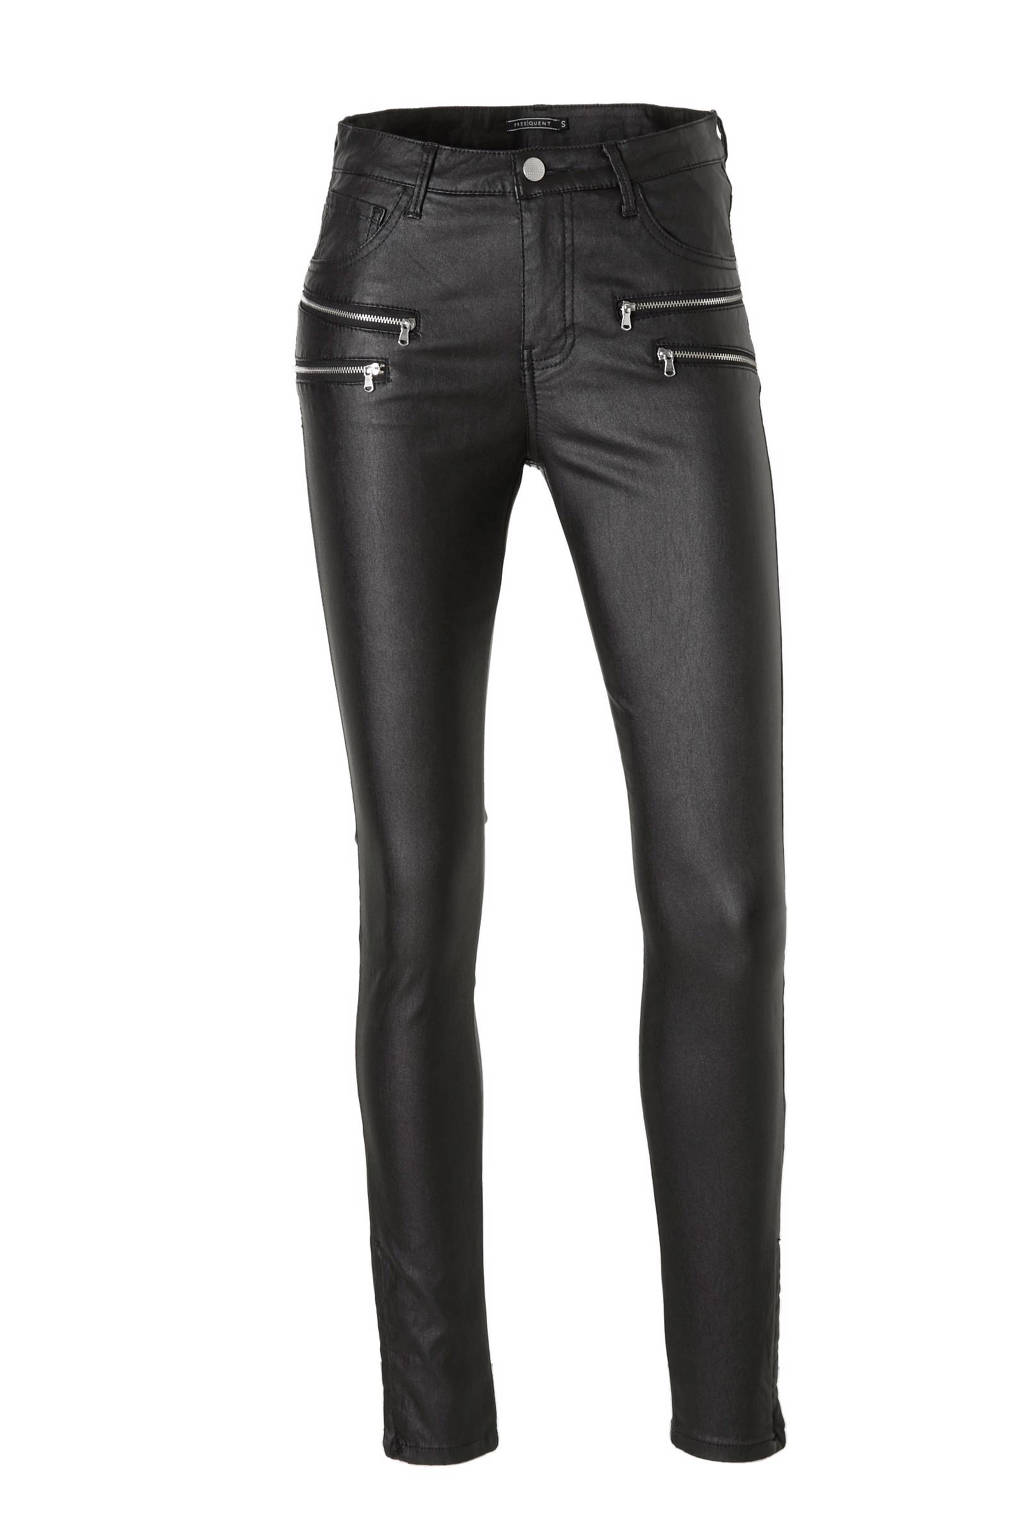 FREEQUENT 7/8 skinny fit coated broek, Zwart